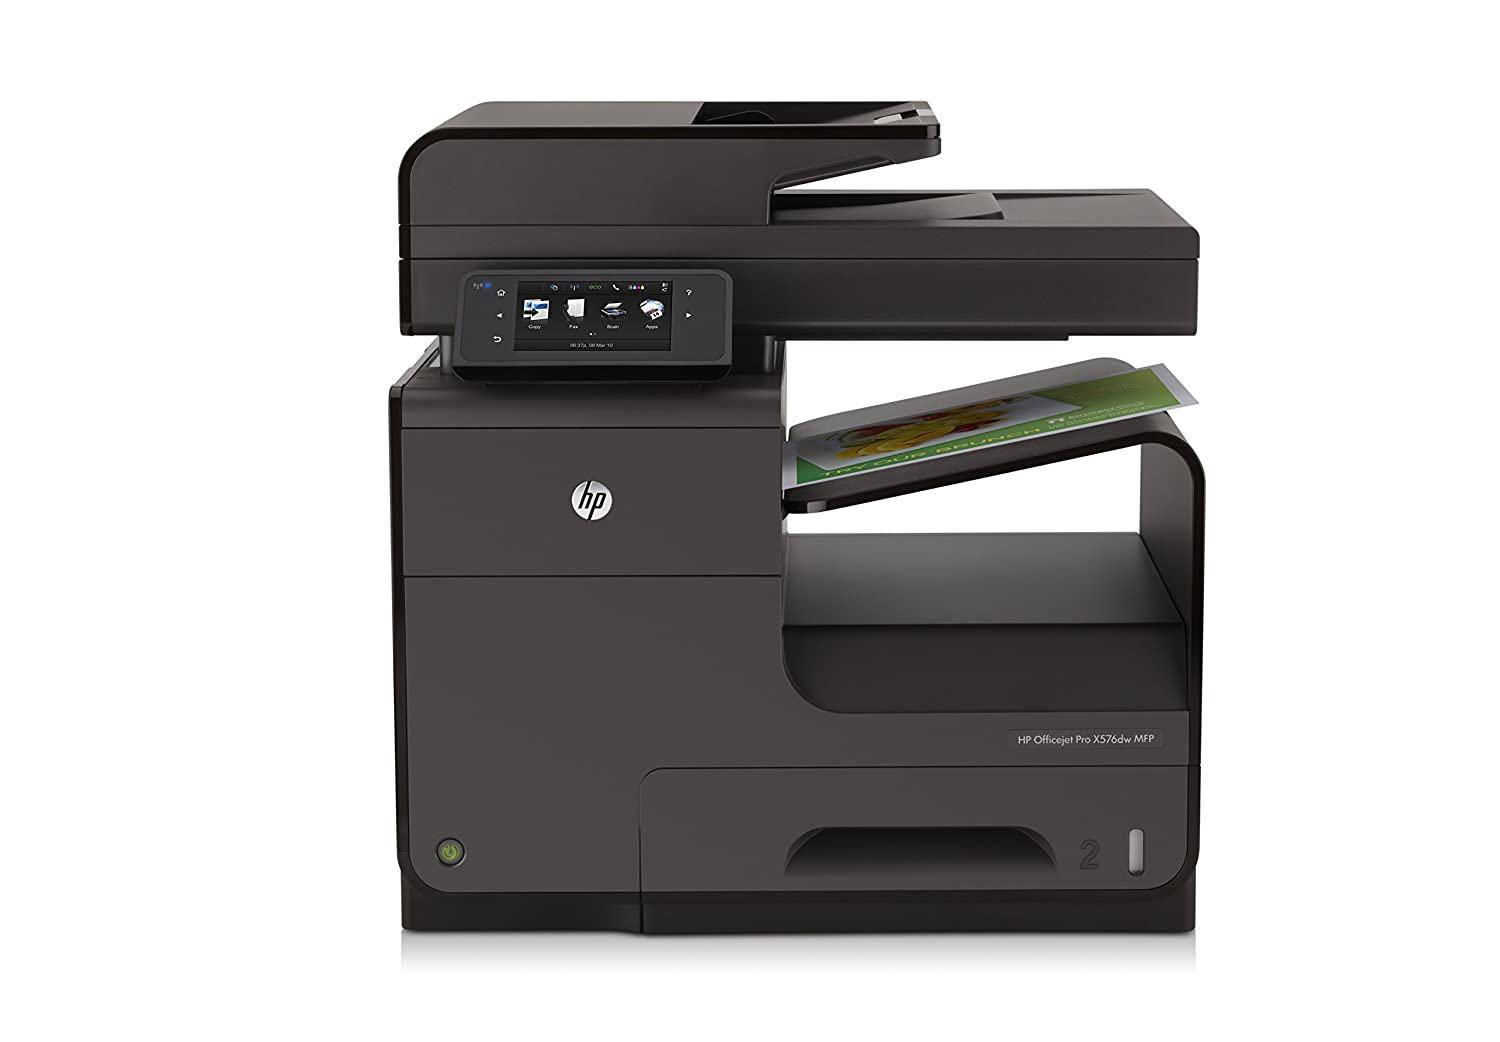 Top 9 best printers for Mac, iPad & iPhone (2020 Reviews & Buying Guide) 8